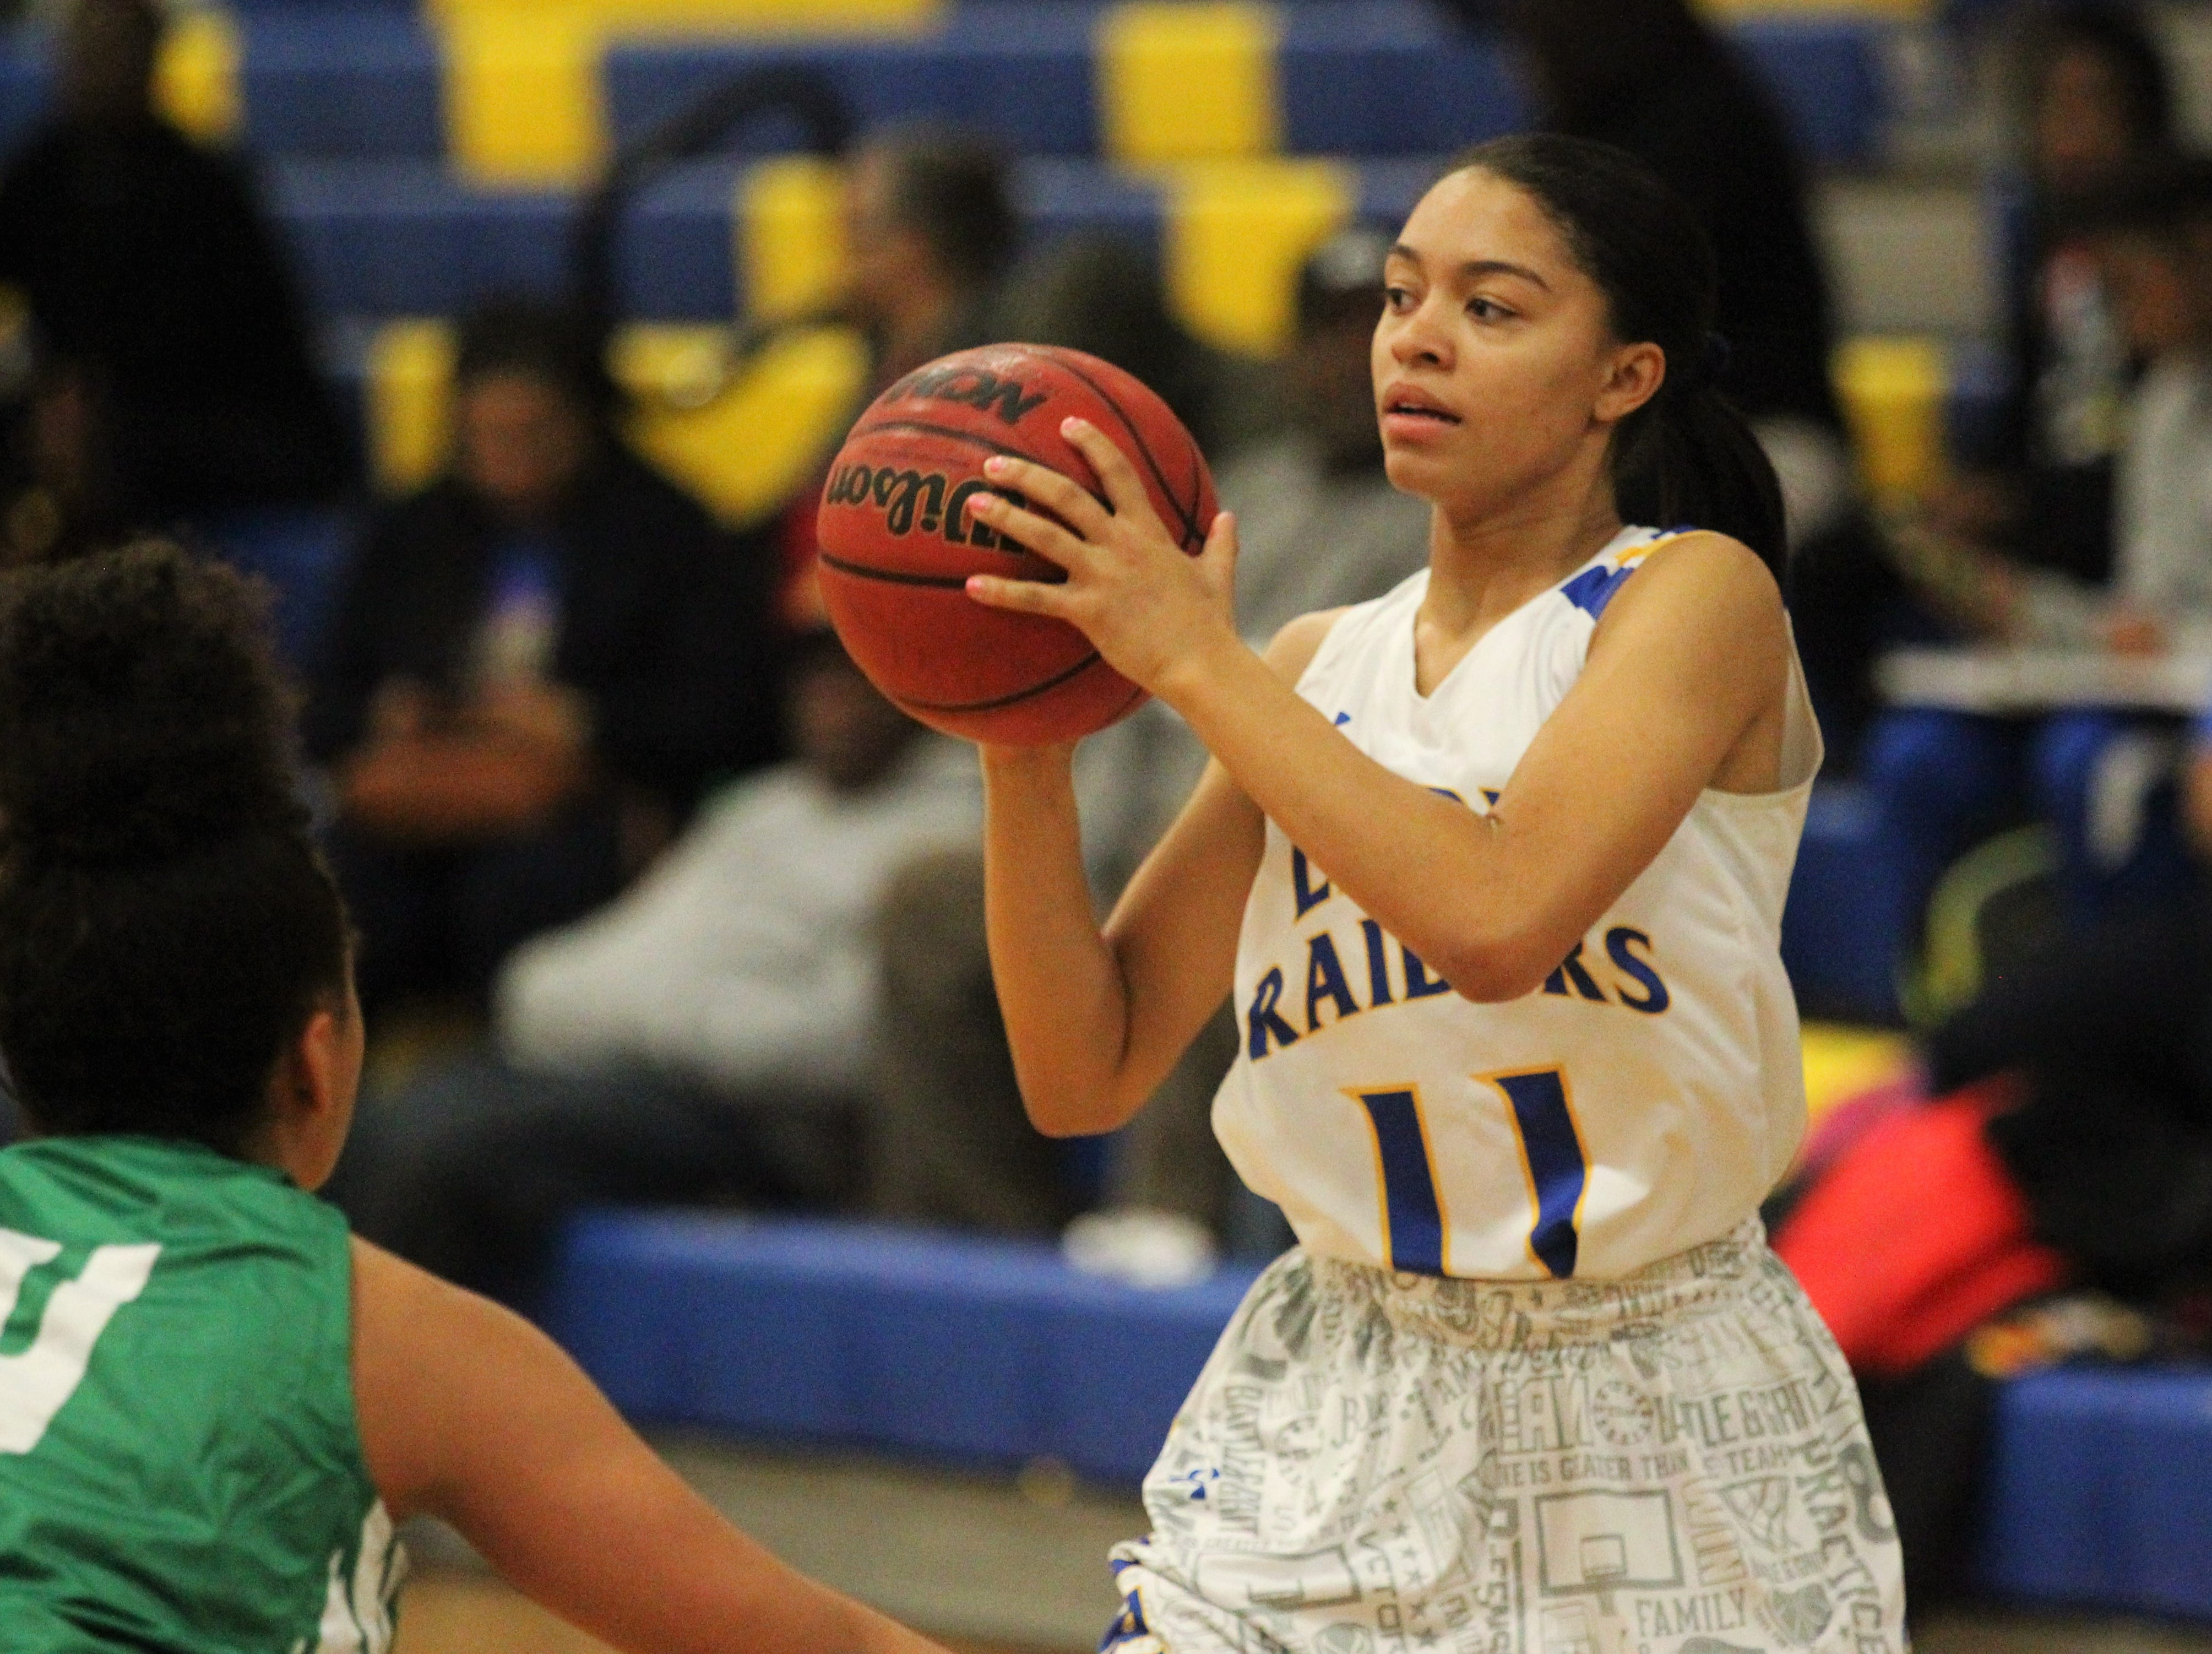 Rickards senior guard LaNiyah Lee looks for a pass as the Raiders beat Choctaw on Jan. 25, 2019.